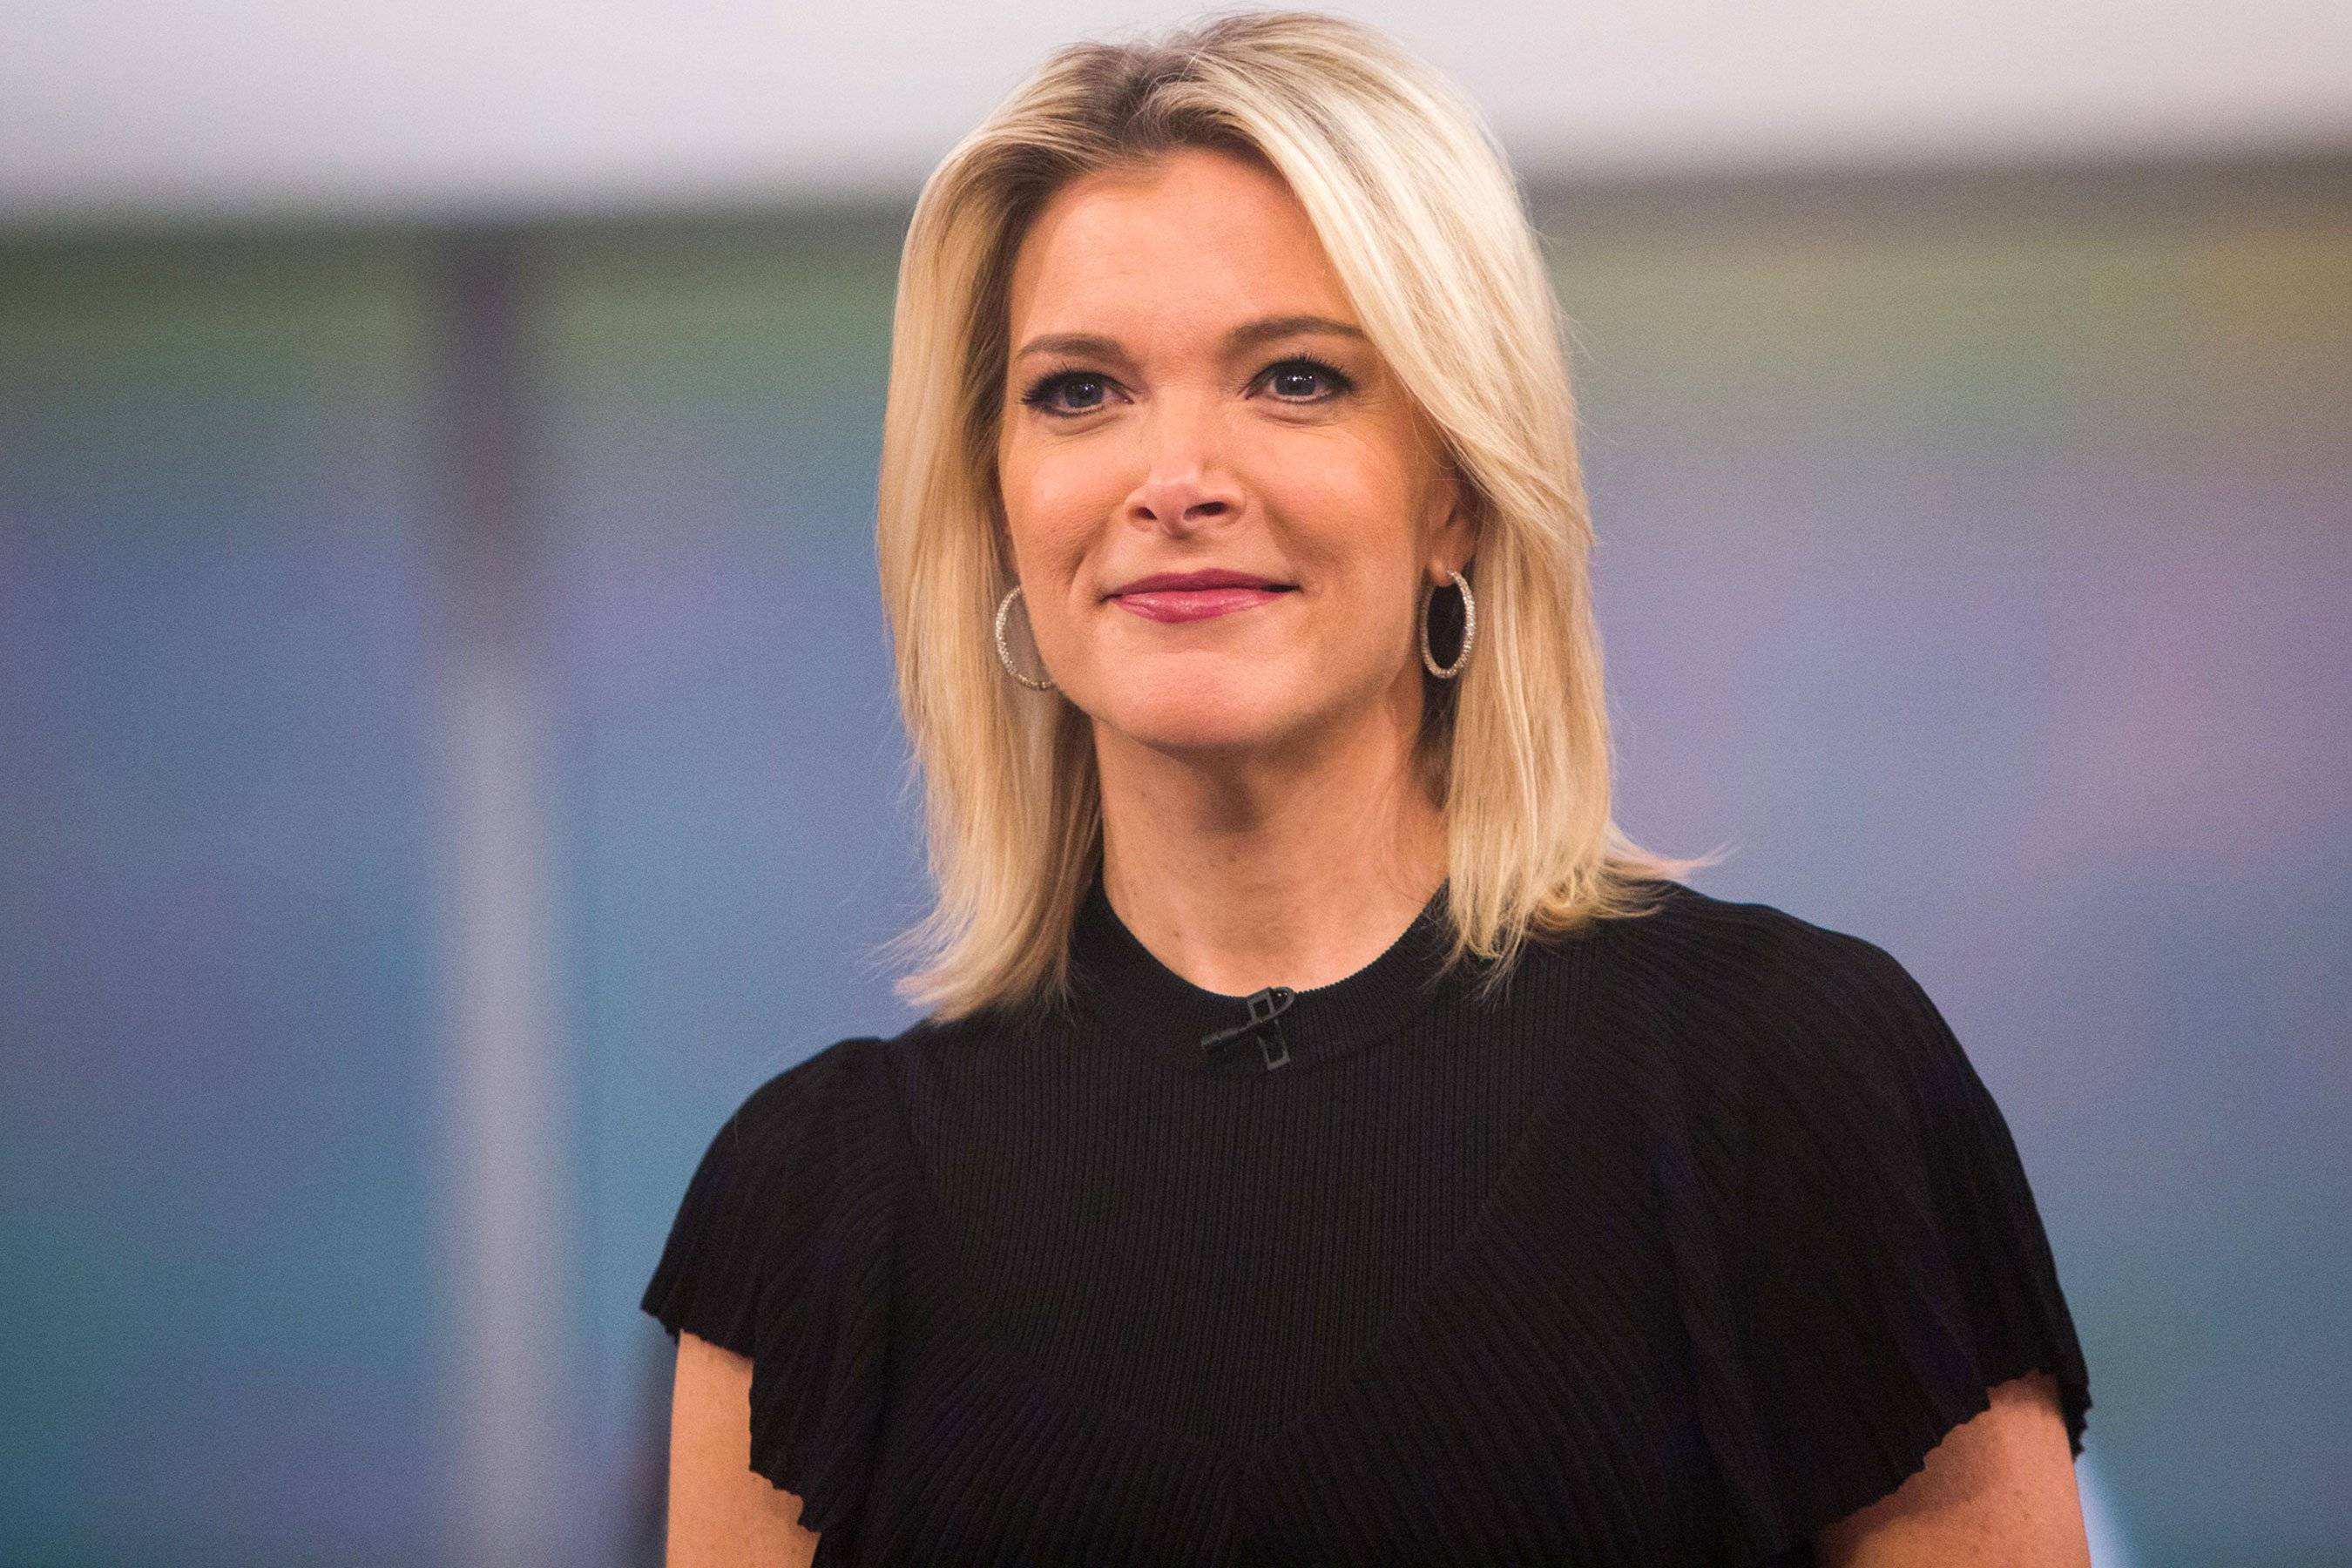 Megyn Kelly slams Hollywood hypocrisy after Golden Globes